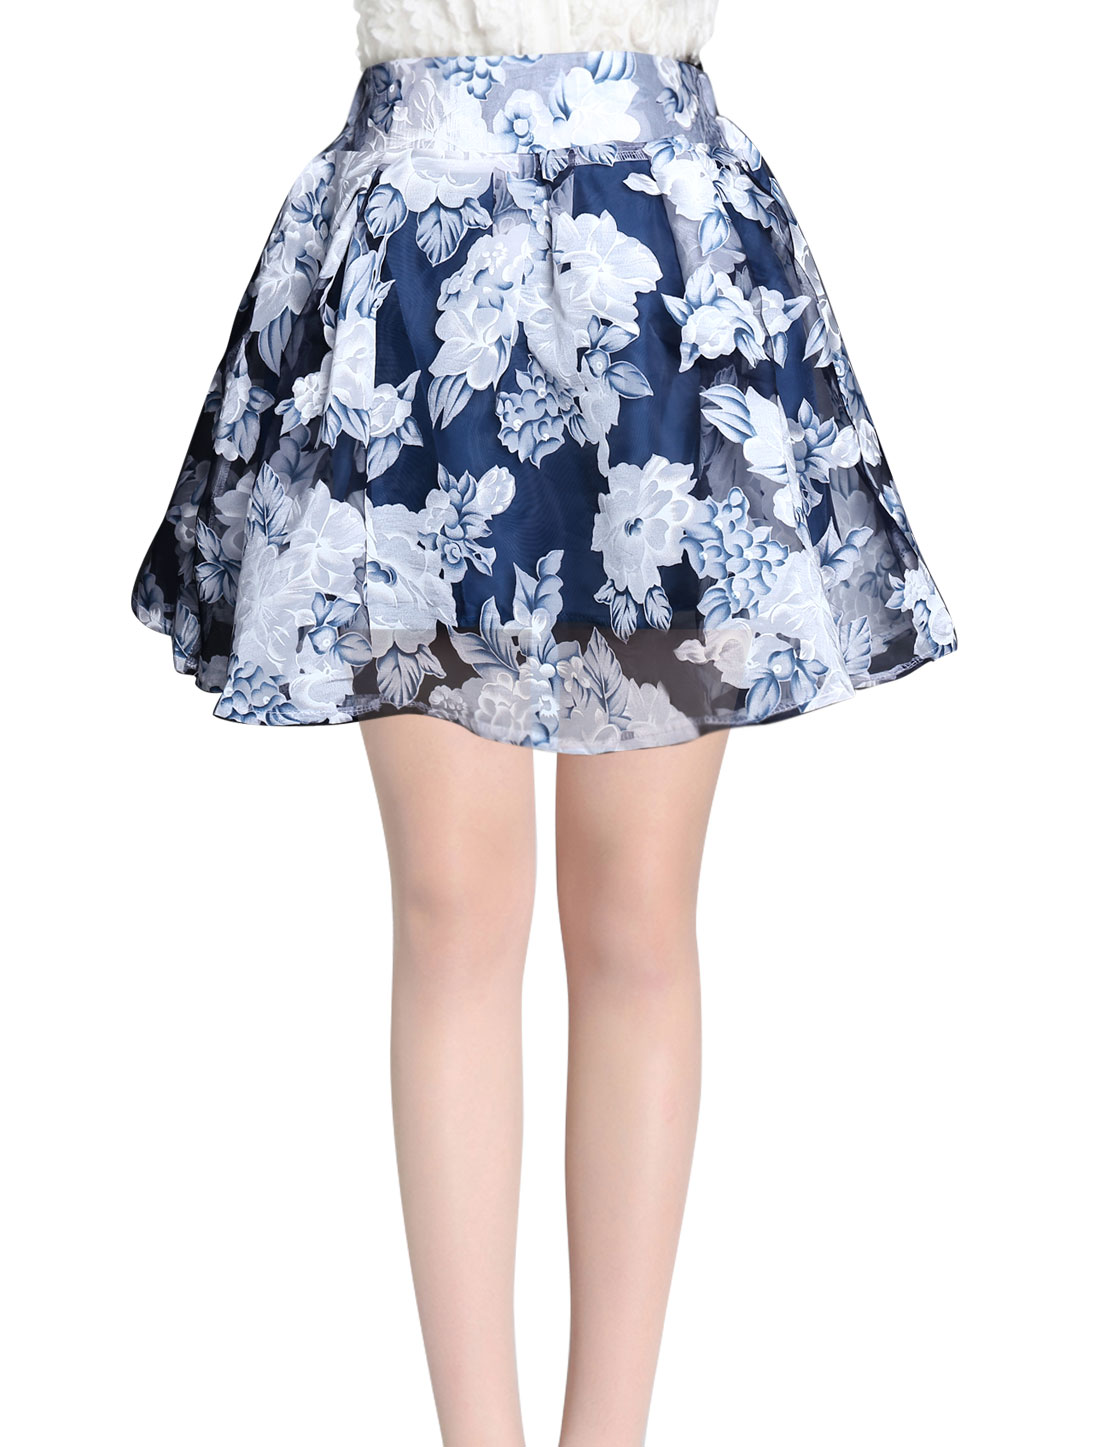 Womem Elatic Waist Floral Prints Fashion Design Mini Skirt Navy Blue M